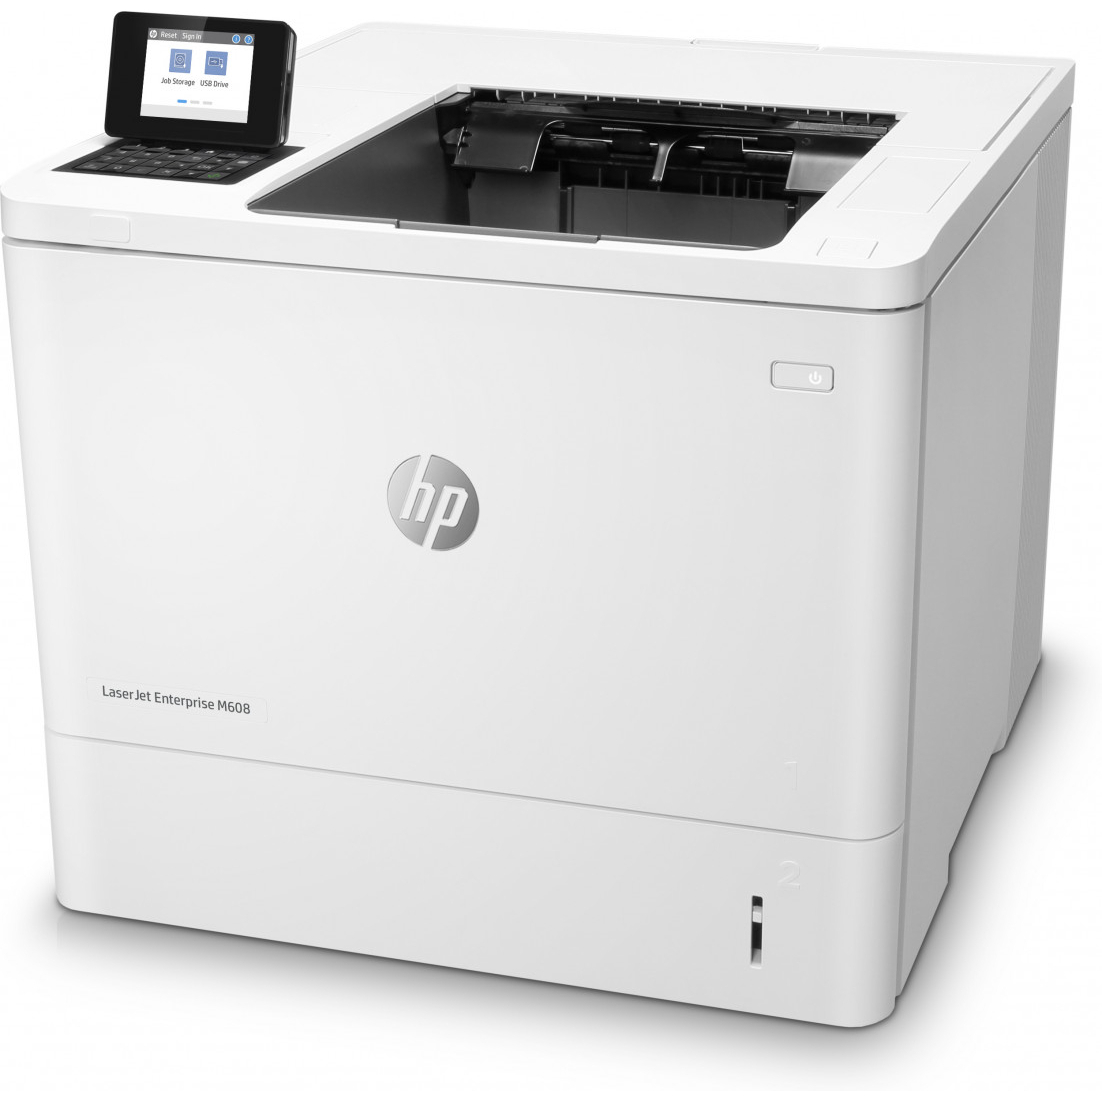 HP LaserJet Enterprise Seria M608